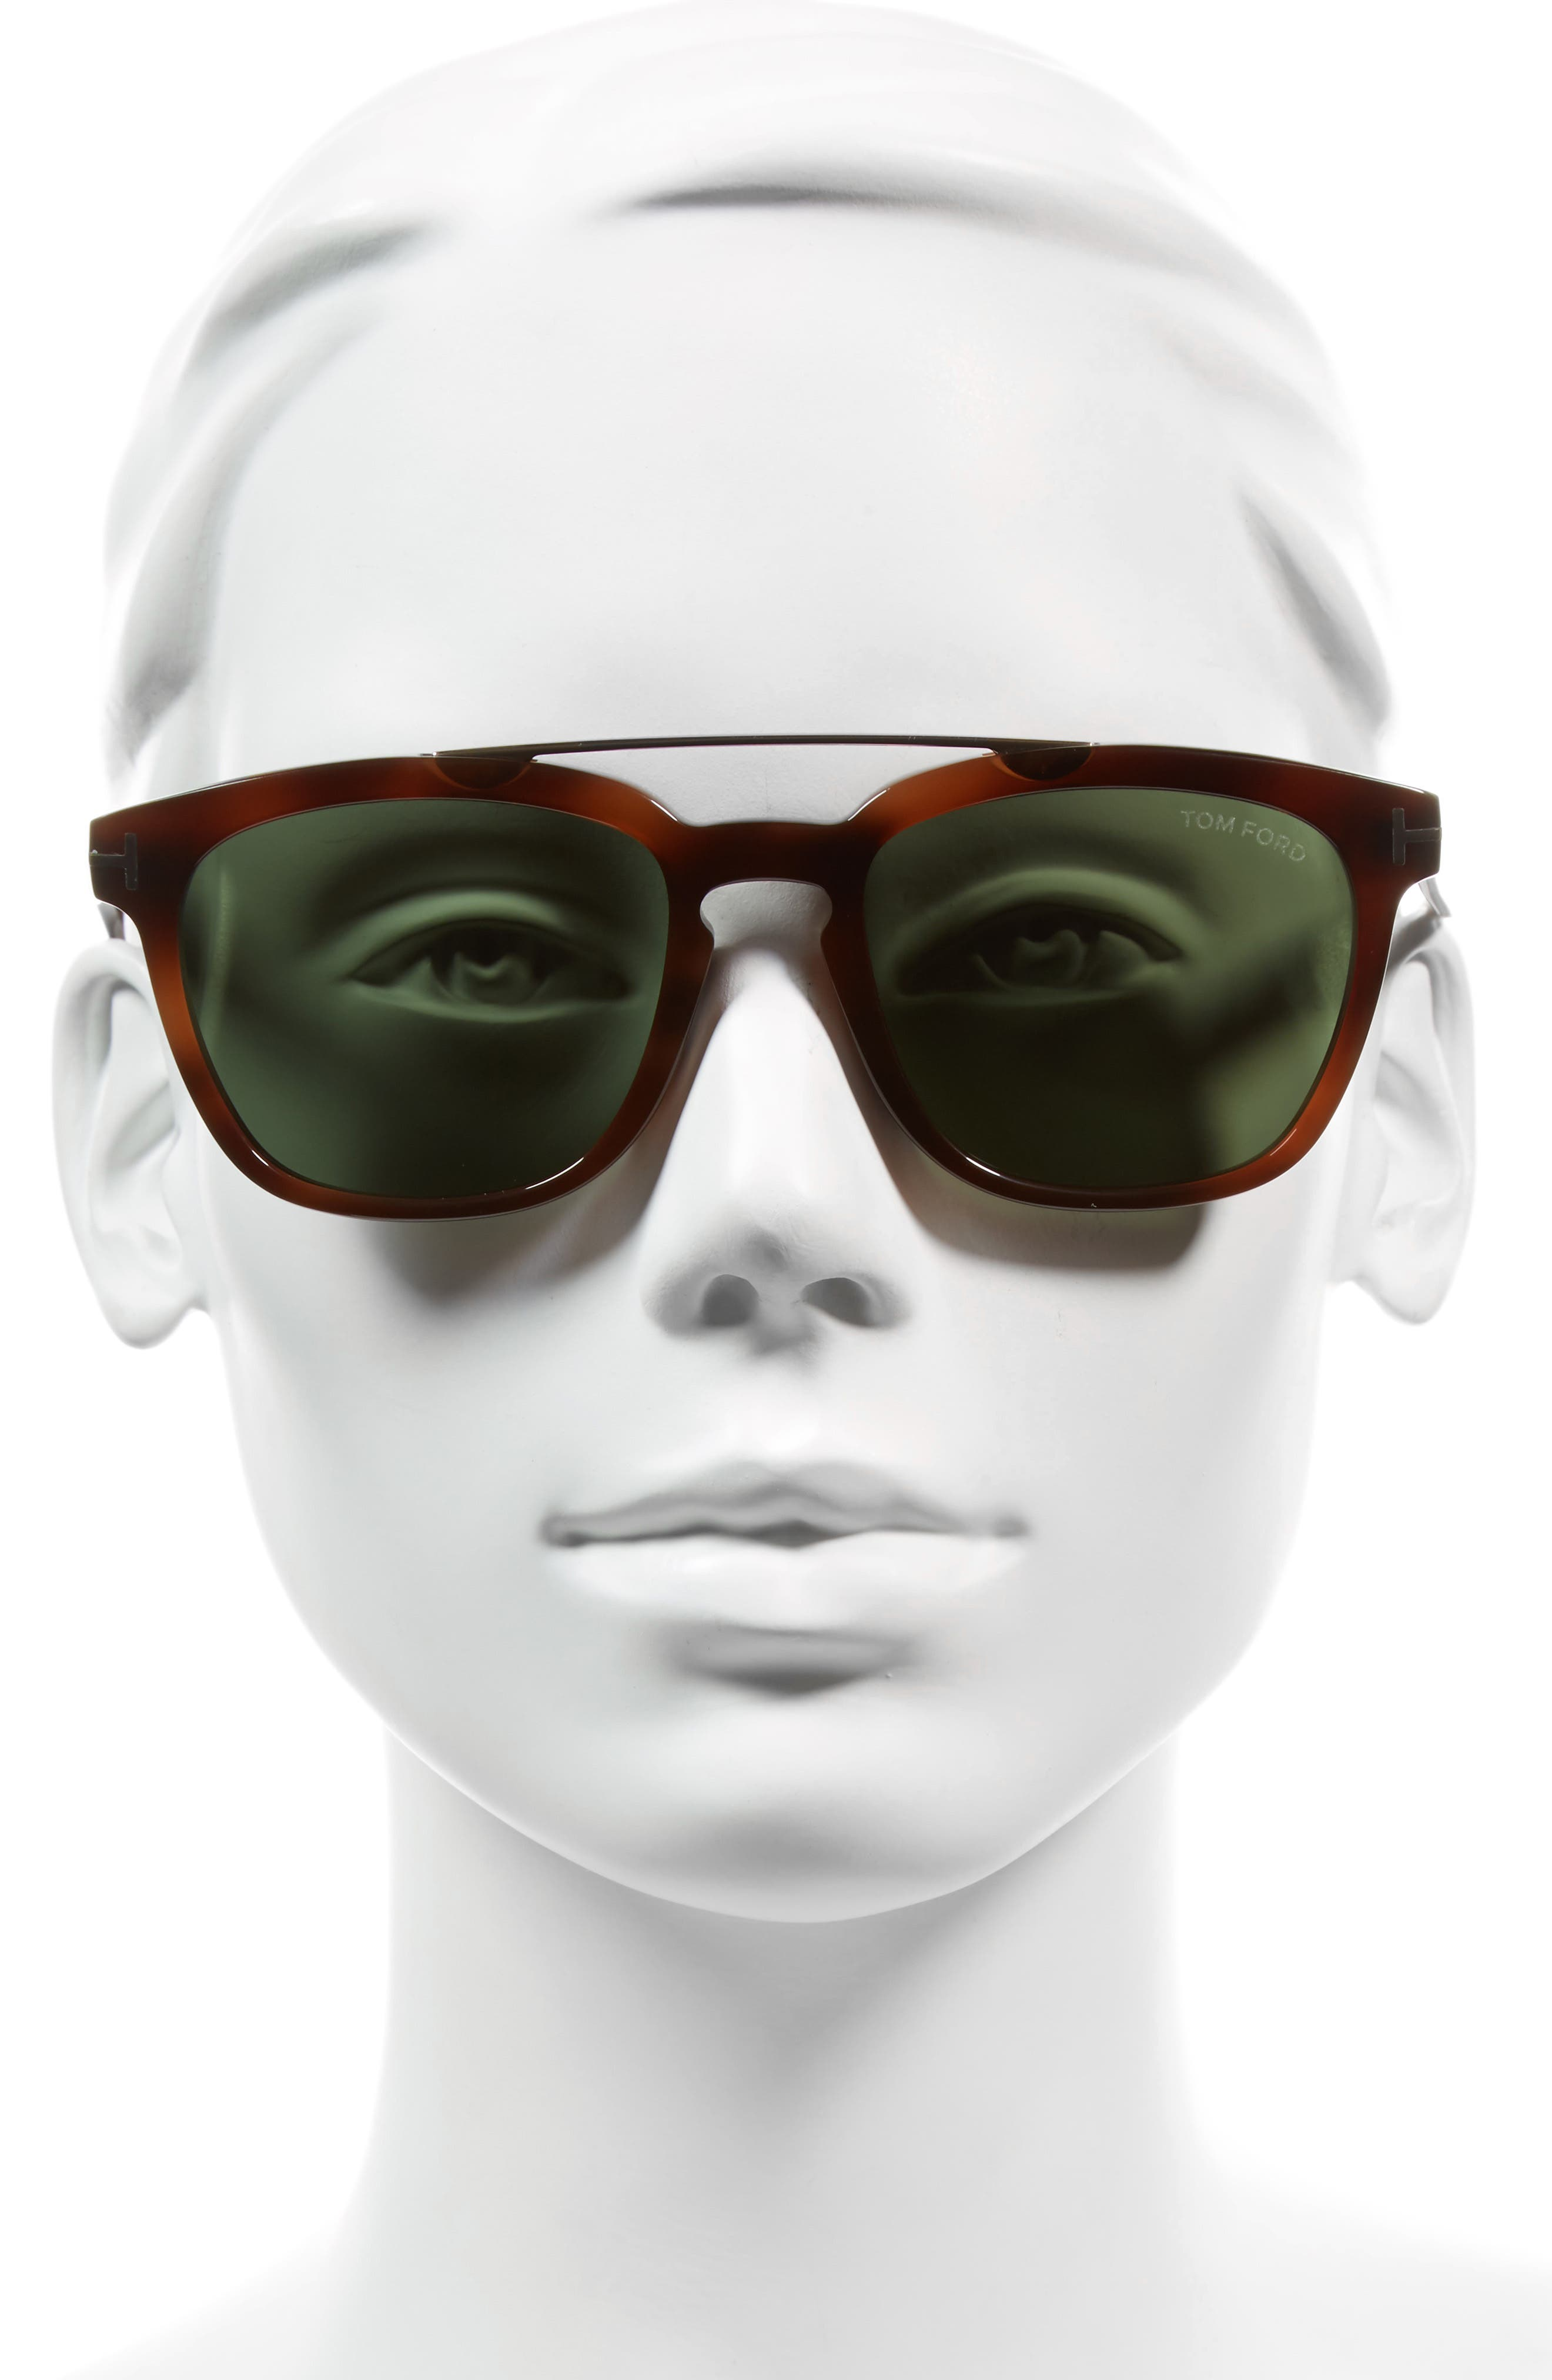 54mm Double Brow Bar Sunglasses,                             Alternate thumbnail 2, color,                             Blonde/ Rose Gold/ Green